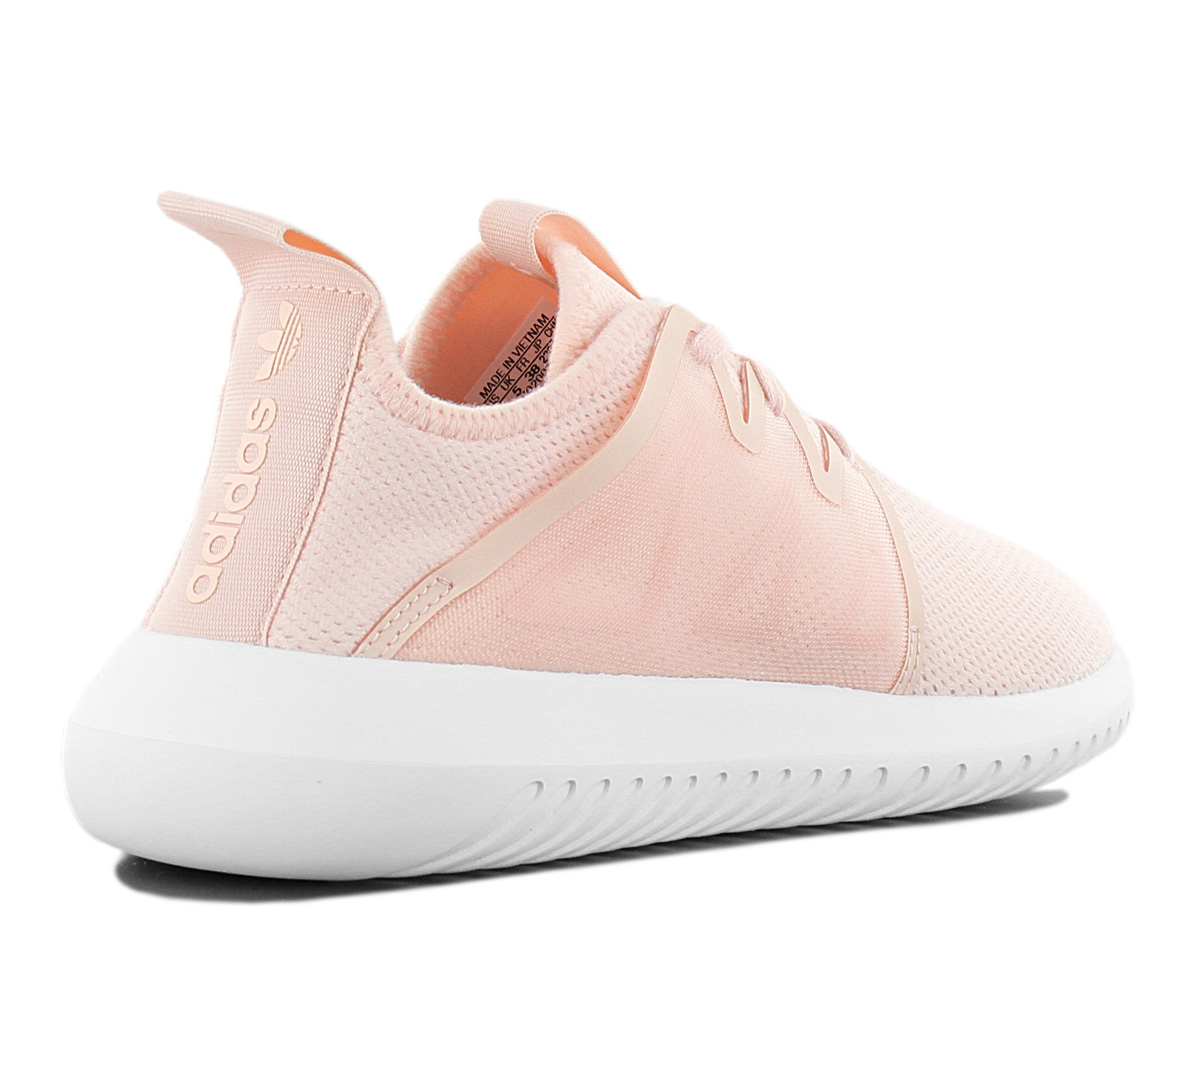 pretty nice 36039 d932b Adidas Originals Tubular Viral 2 W Ladies Sneaker Shoes By2122 Rosa ...